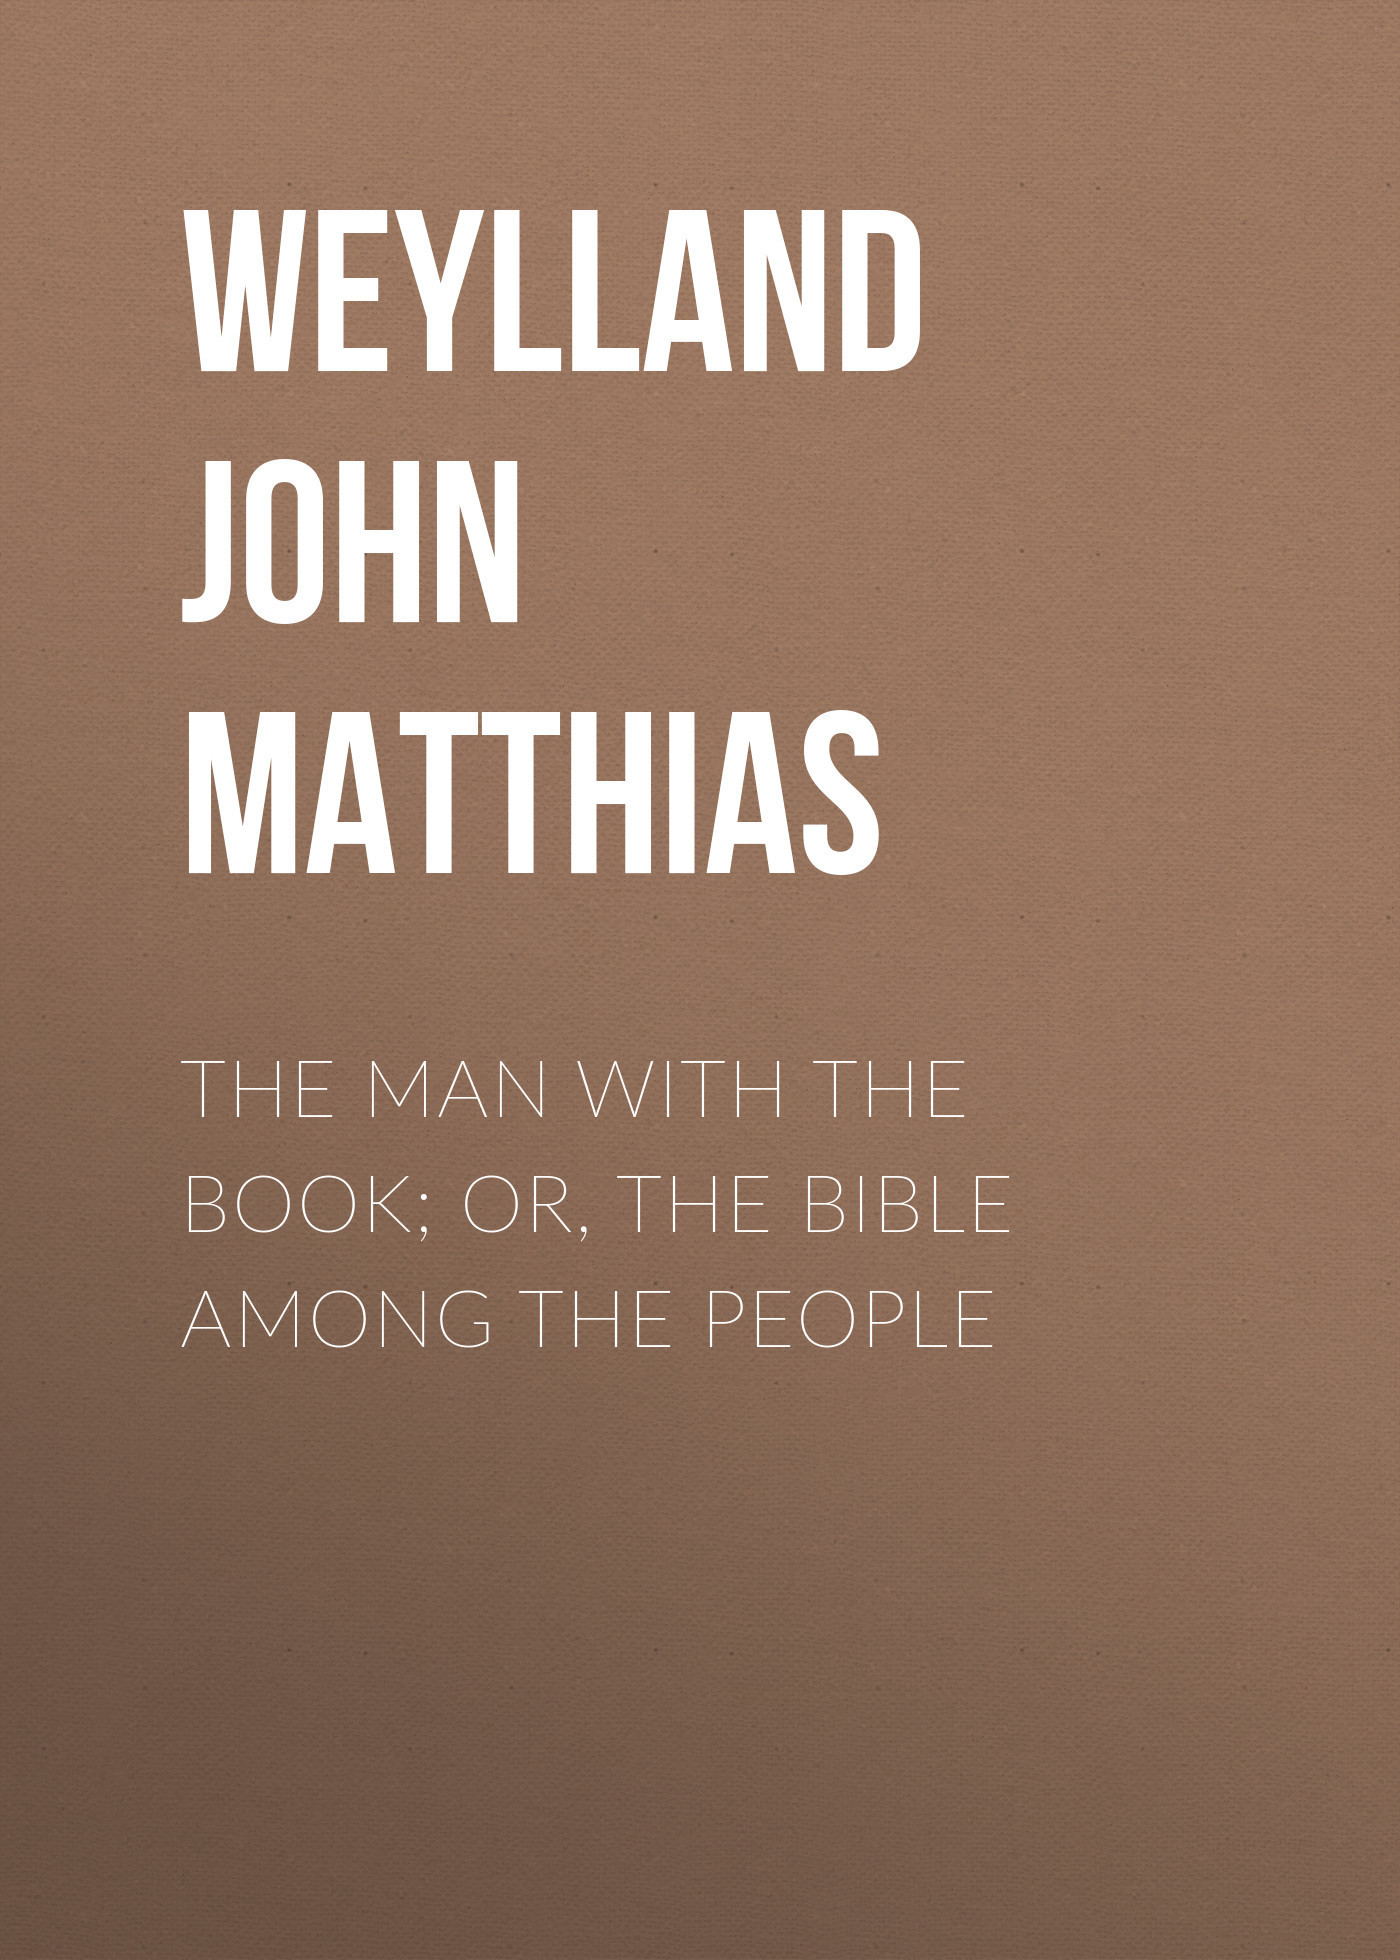 Weylland John Matthias The Man with the Book; or, The Bible Among the People love among the chickens